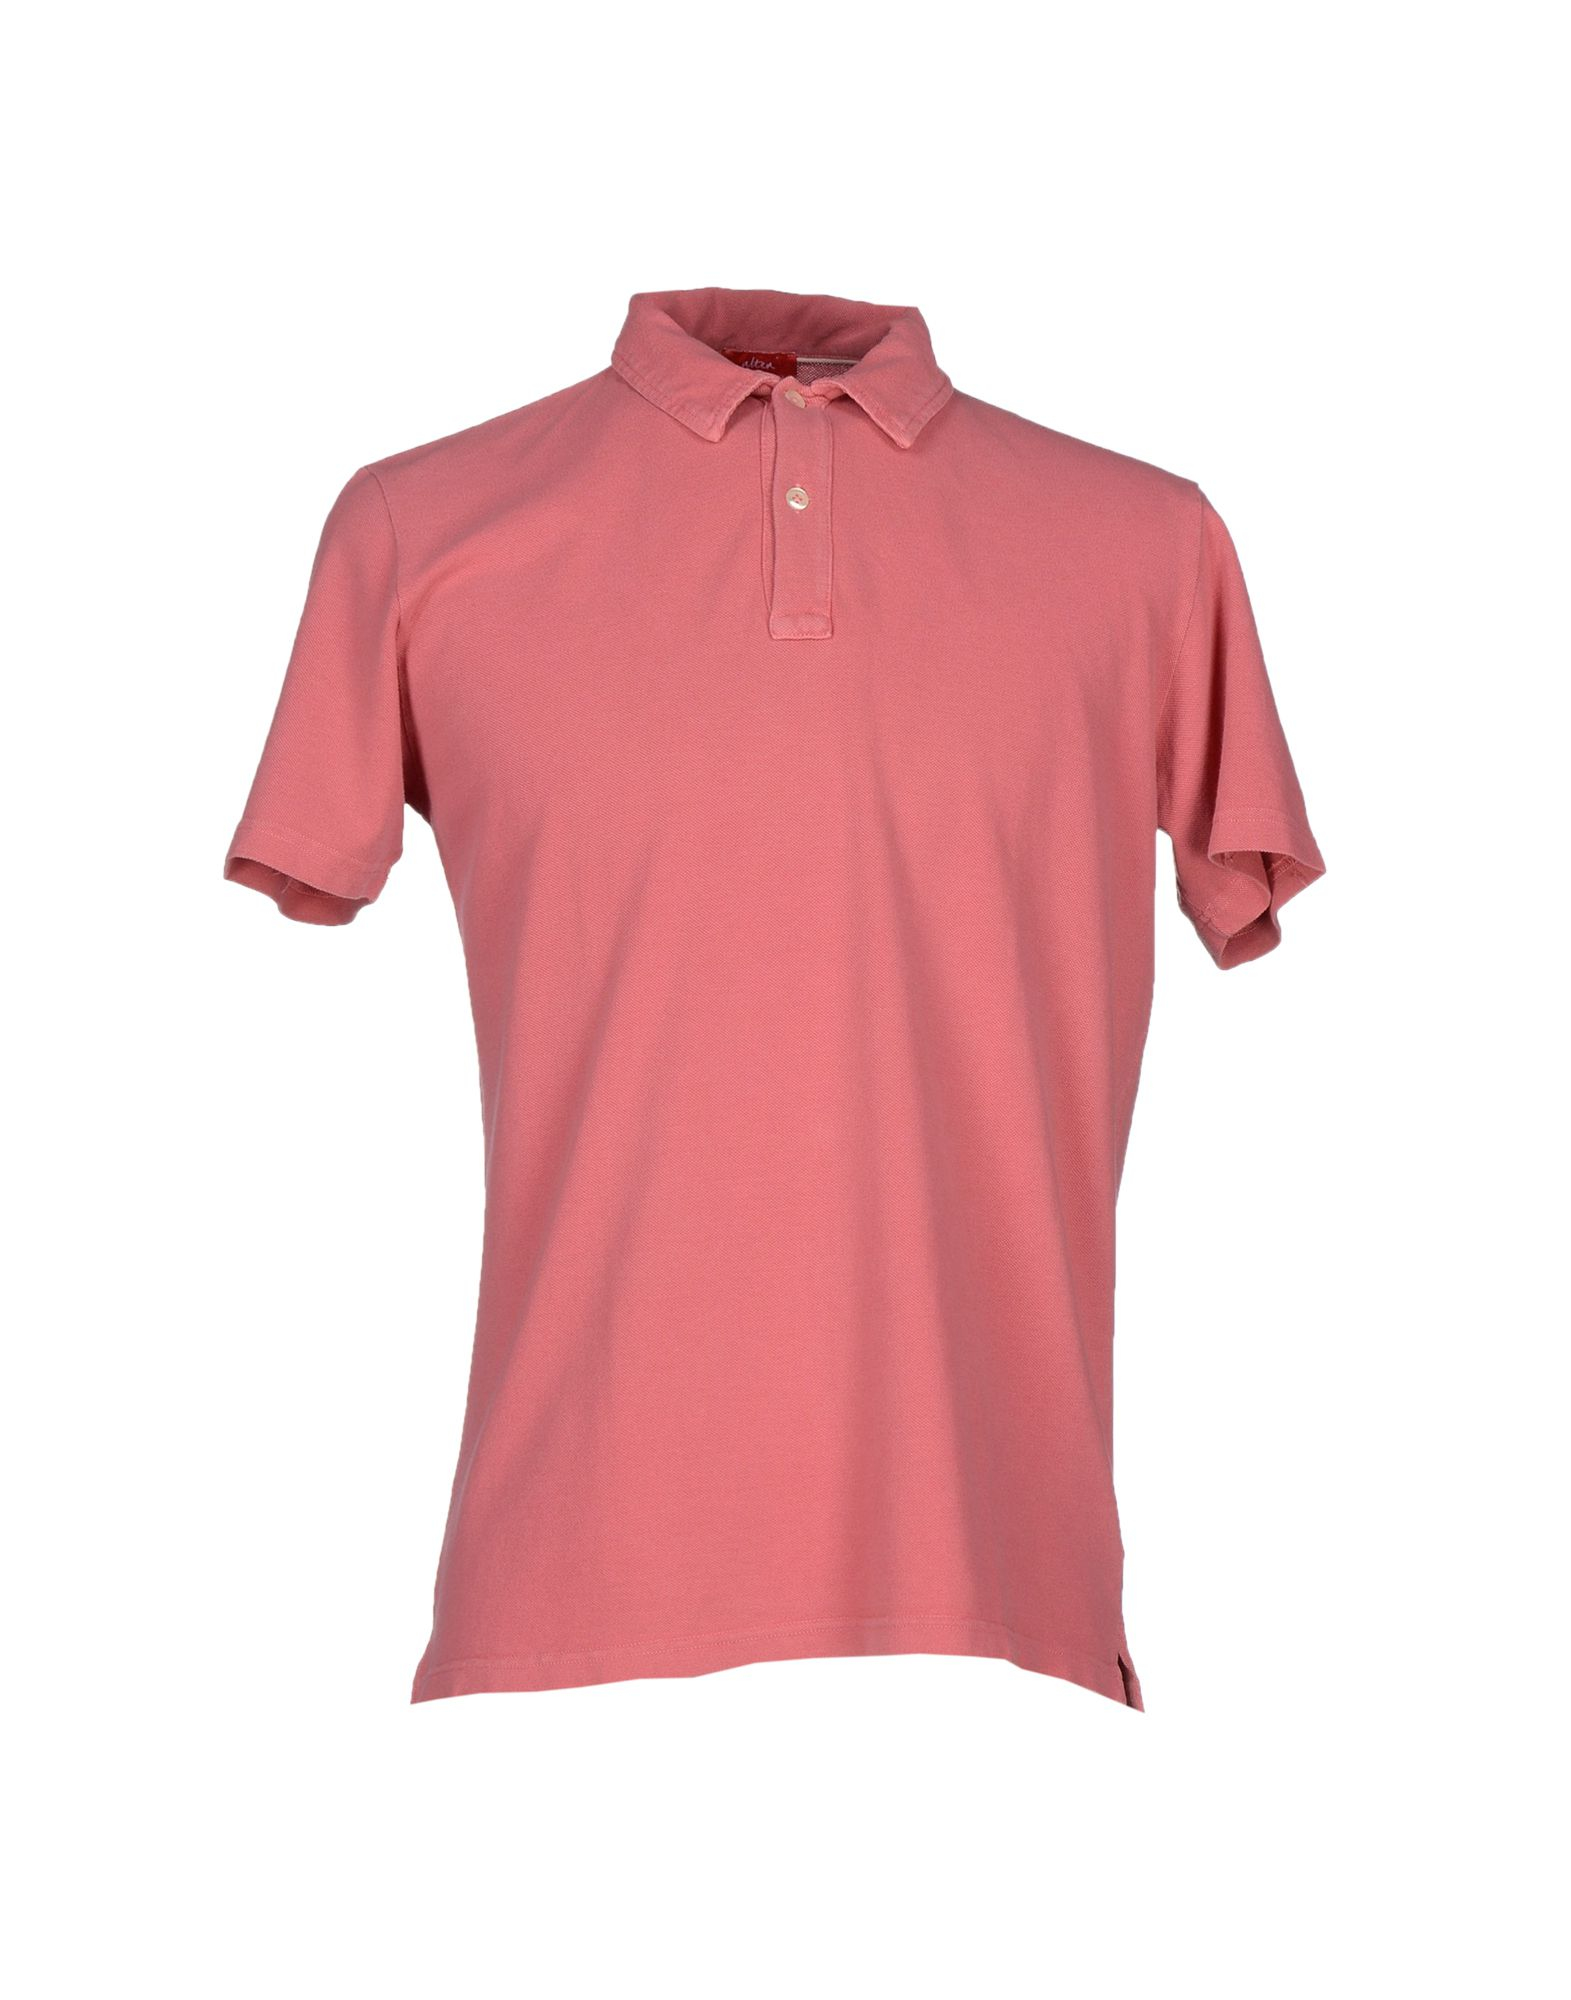 Altea polo shirt in pink for men pastel pink lyst for Pastel colored men s t shirts